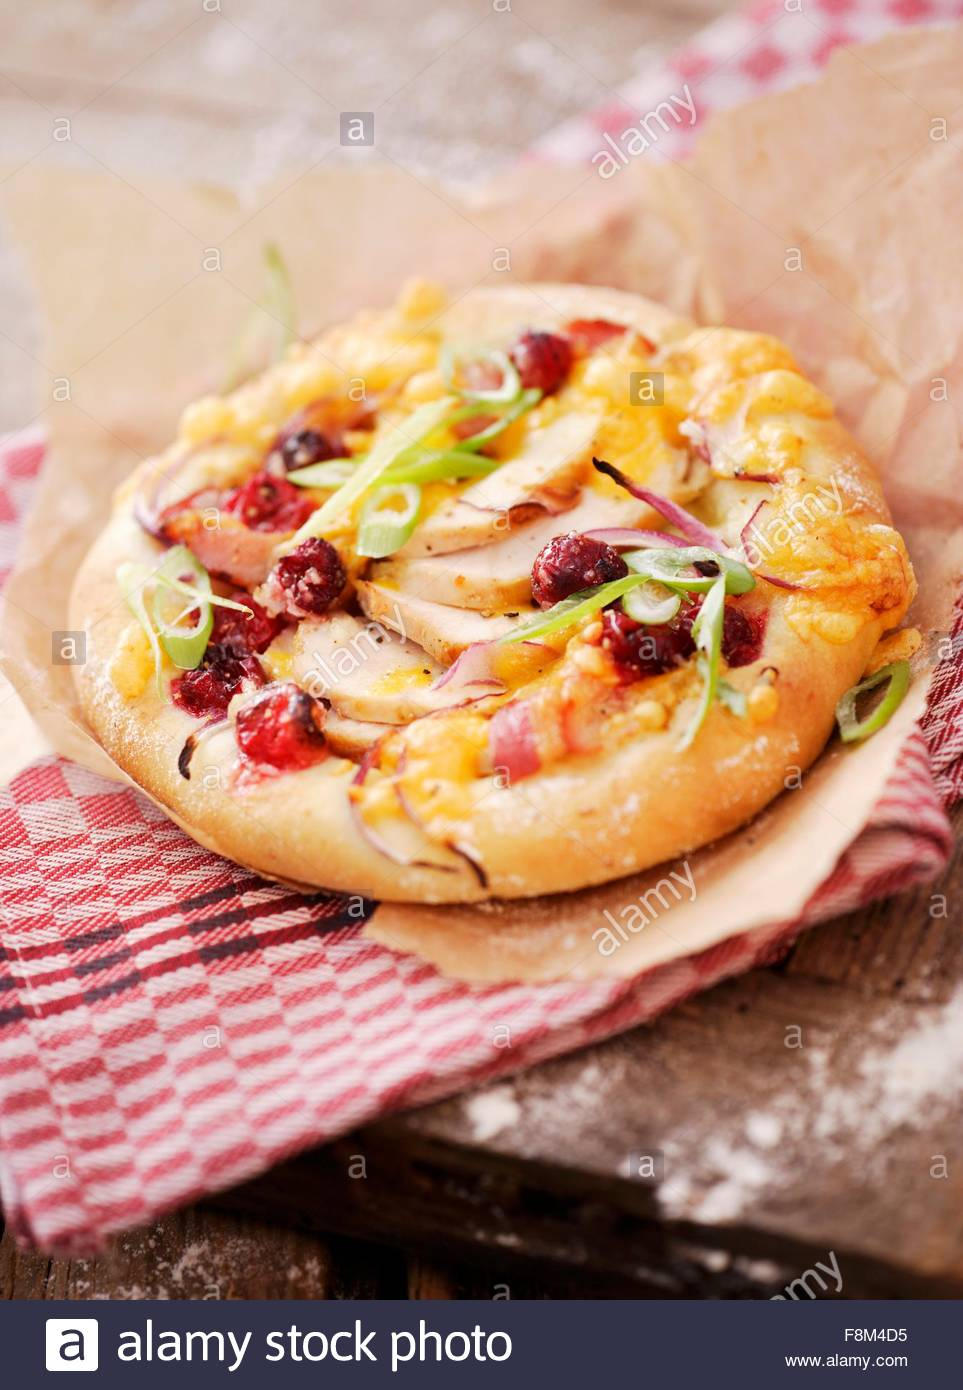 Chicken and cranberry mini-pizza - Stock Image